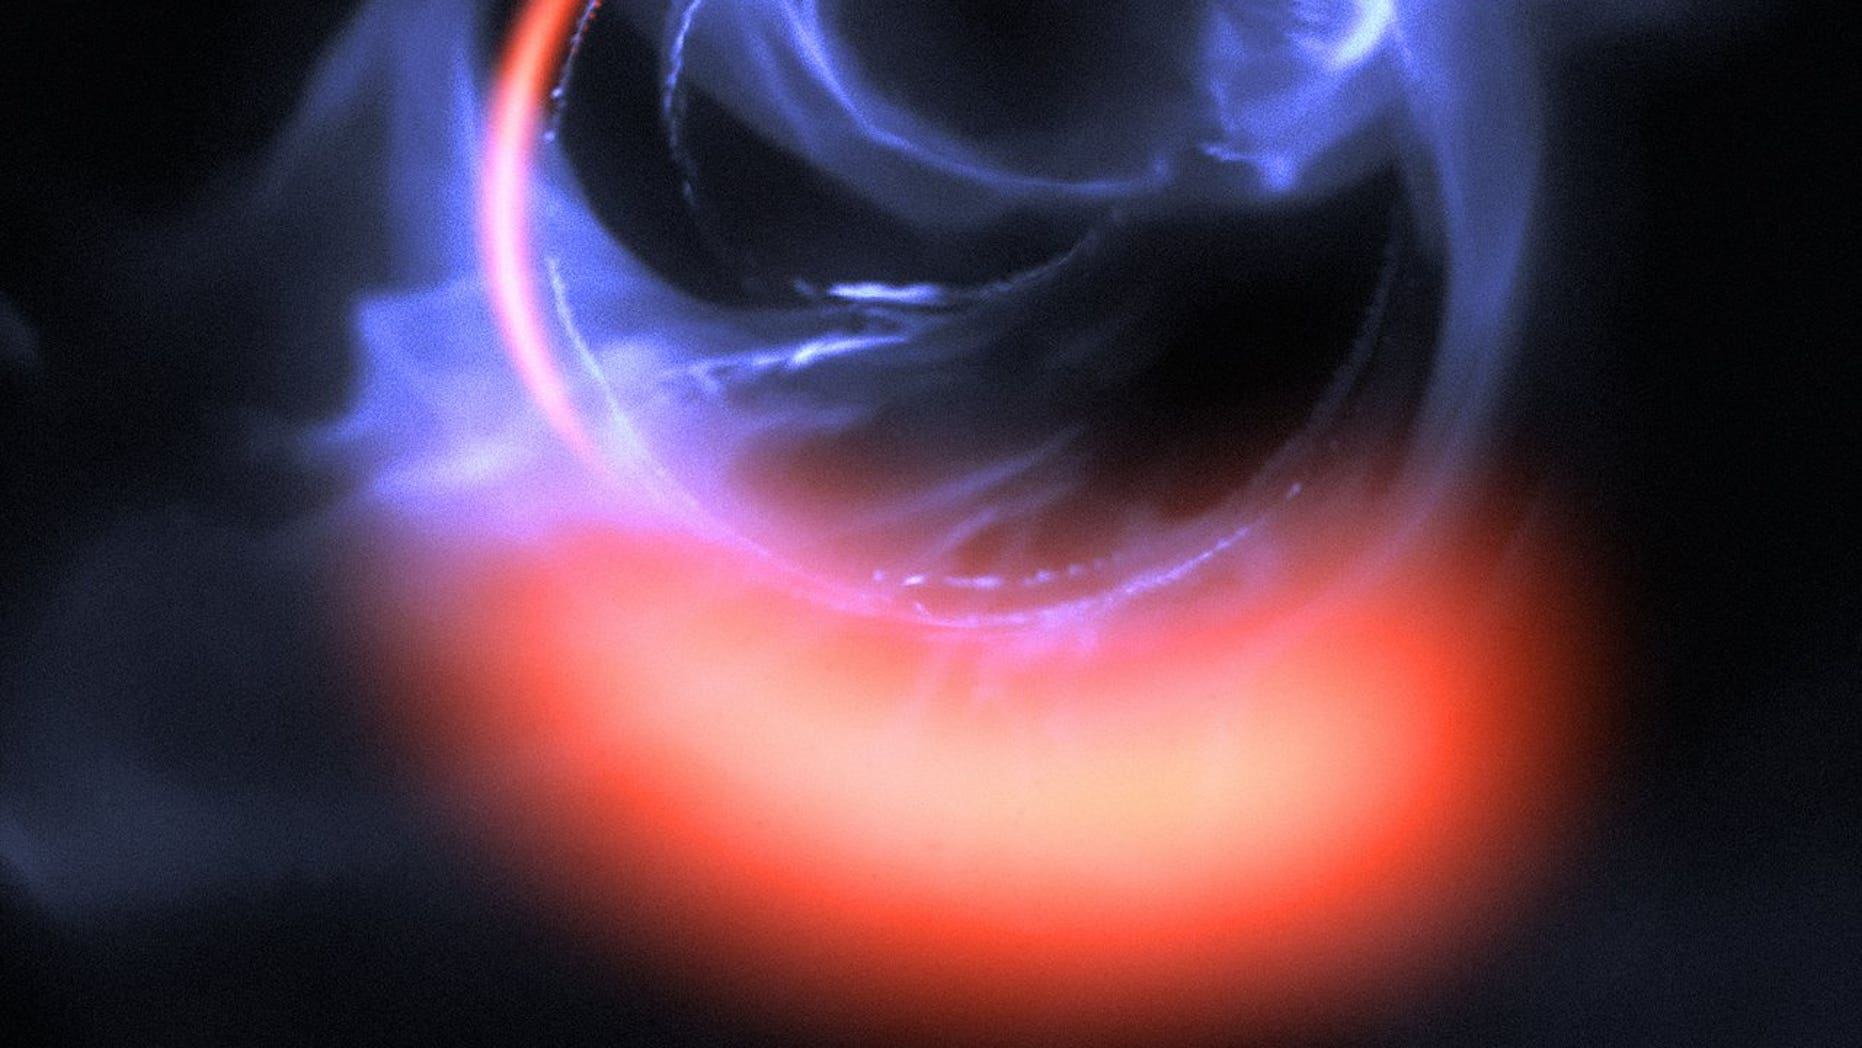 Found lurking at the heart of galaxy, a monster black hole